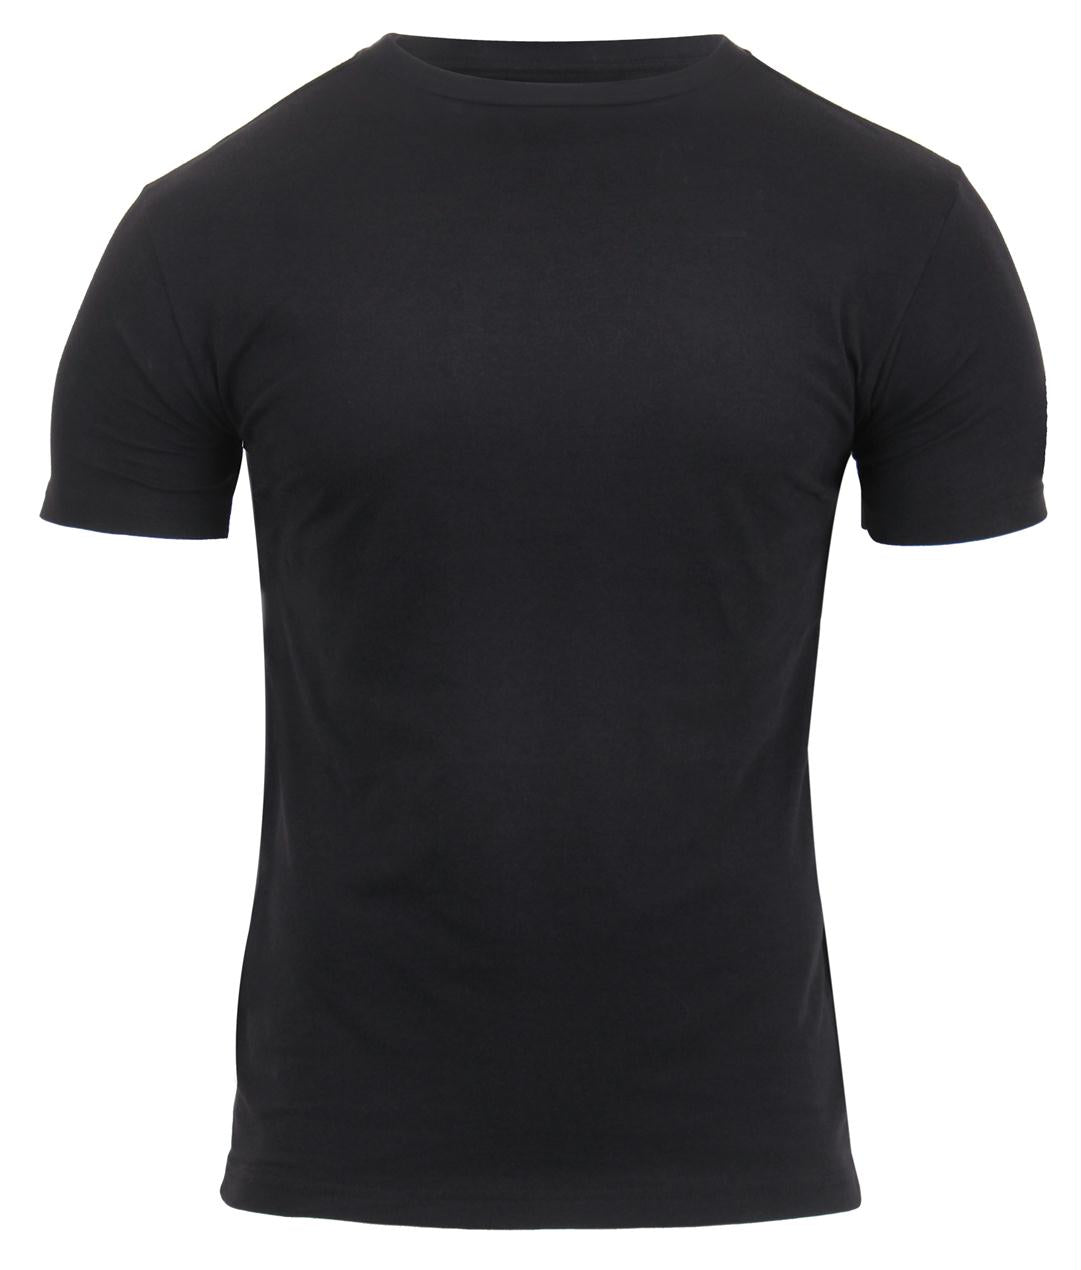 Rothco Athletic Fit Solid Color Military T-Shirt - Black / S